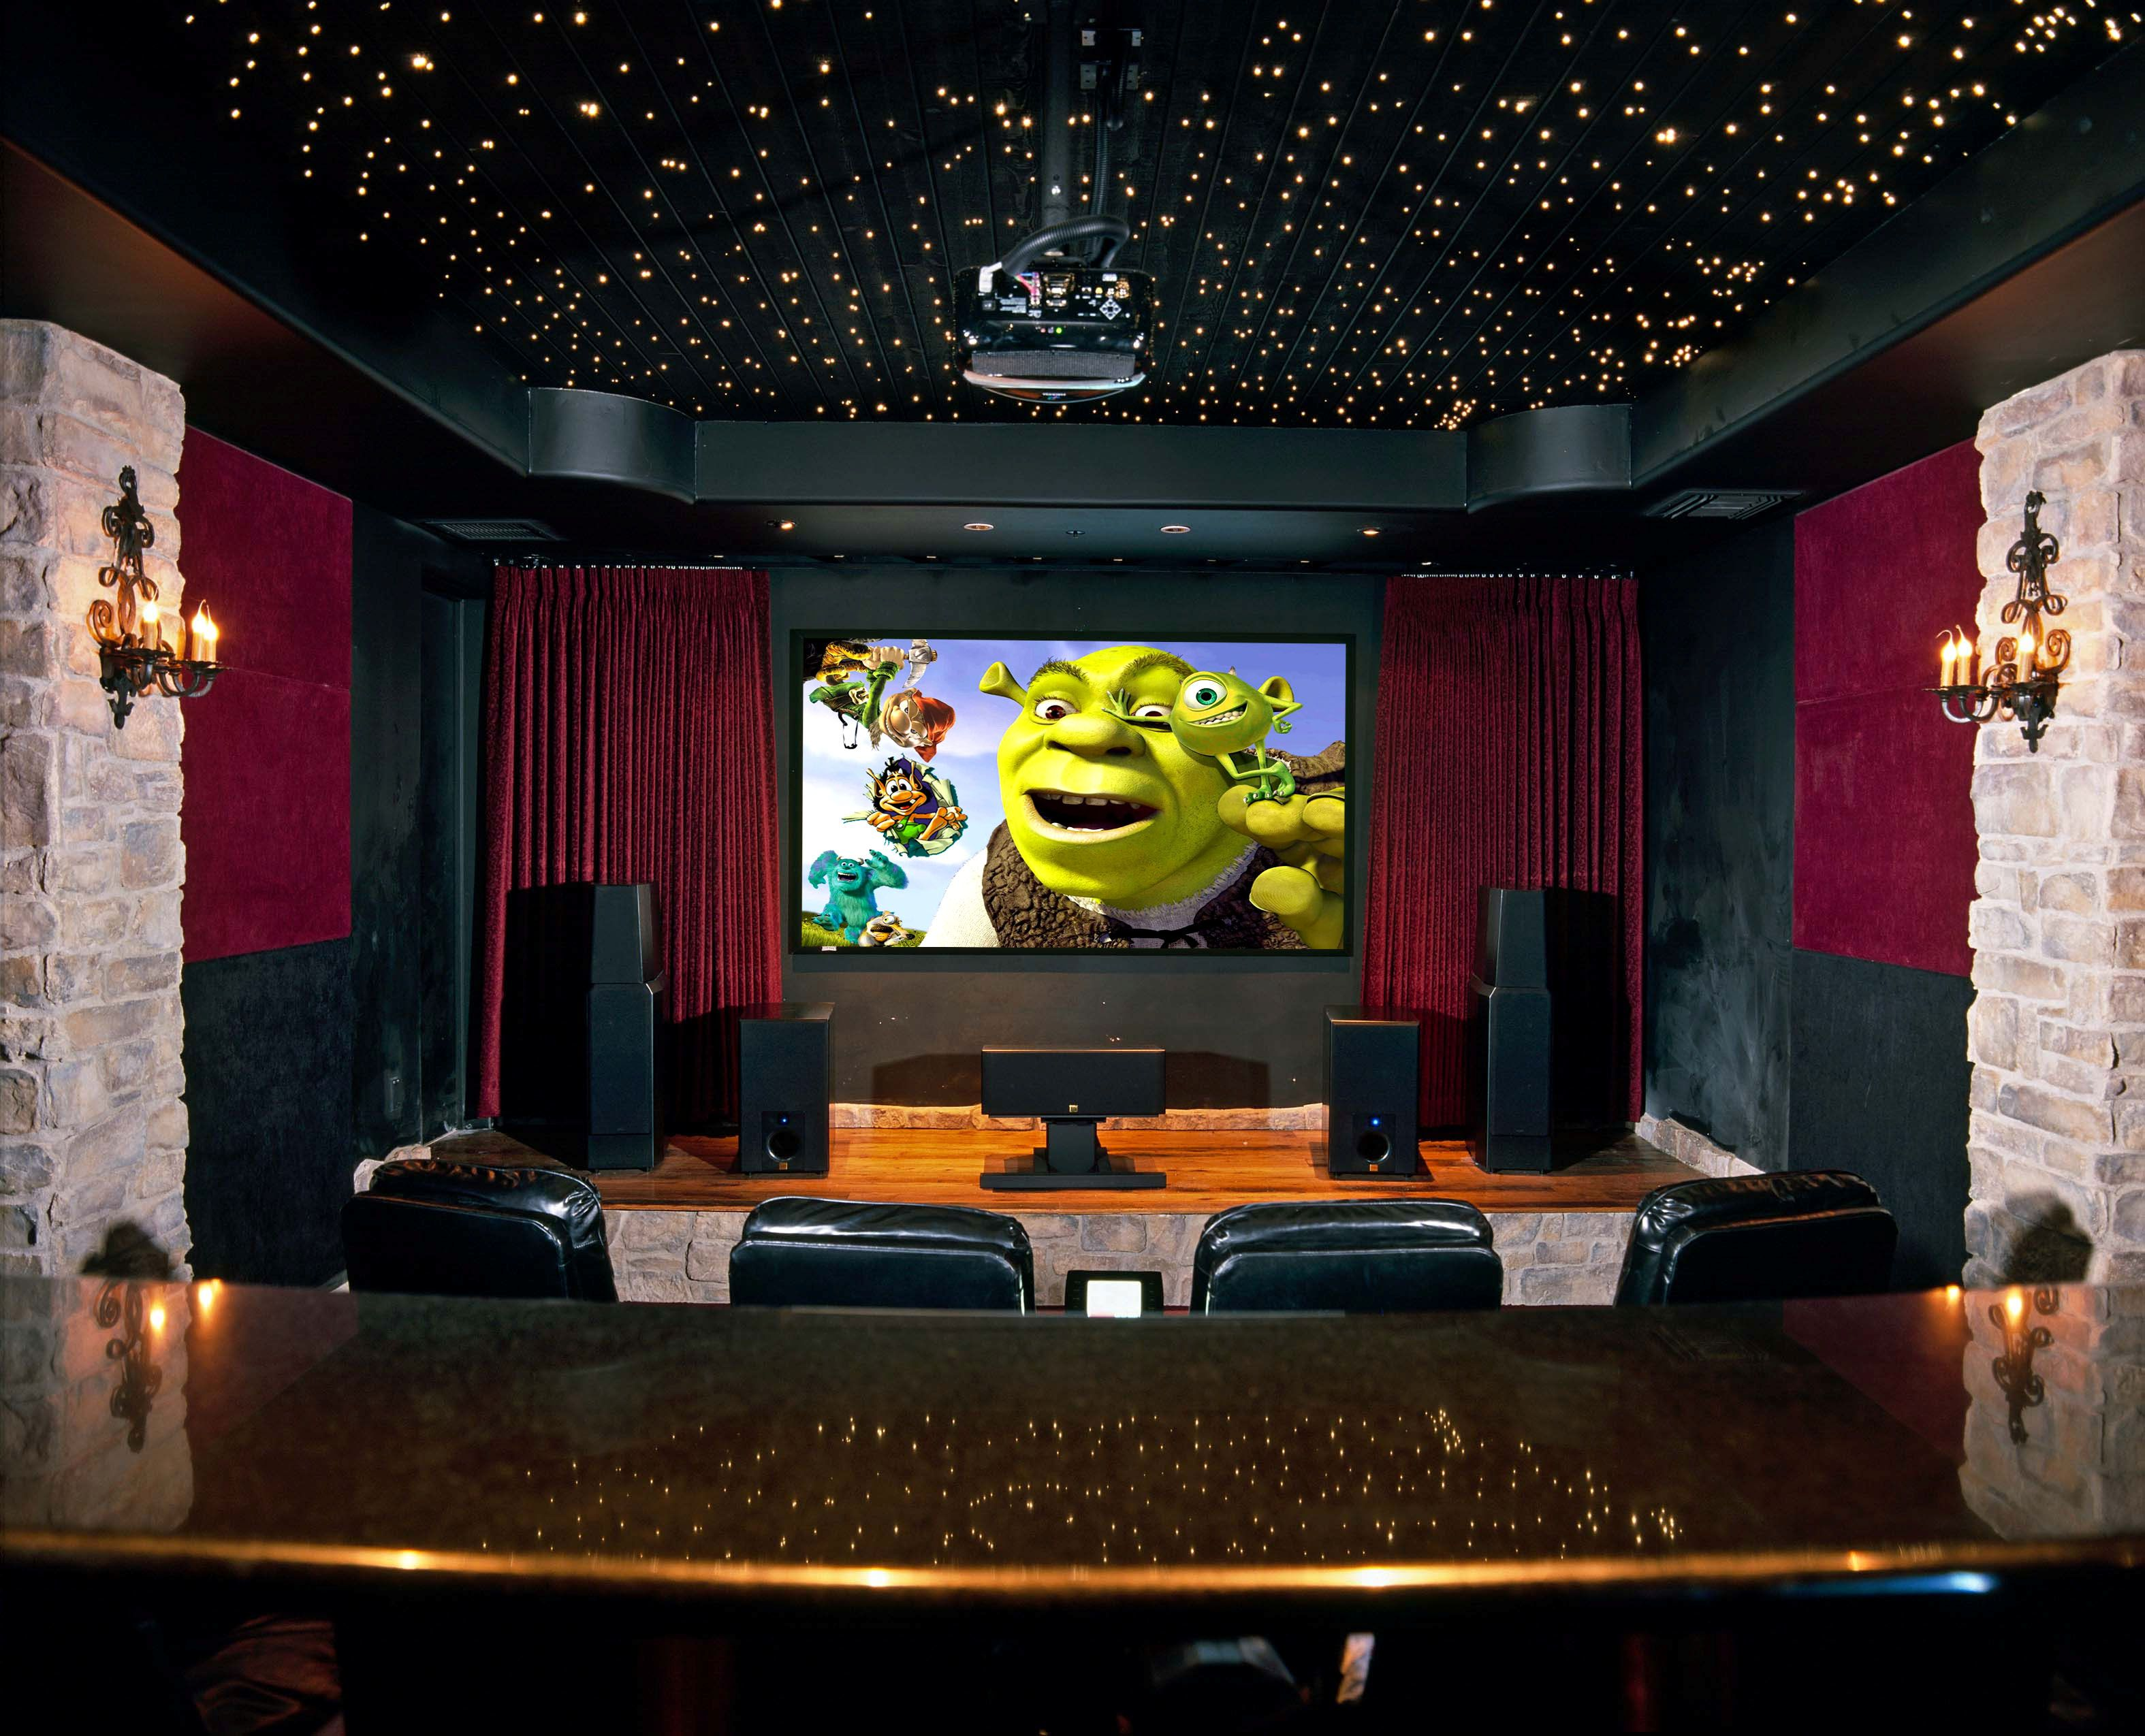 Decorating Beautiful Home Theater Room With Ceiling Design Full Of Stars  And Black Leather Seats Ideas Also Sound Amazing Part 78